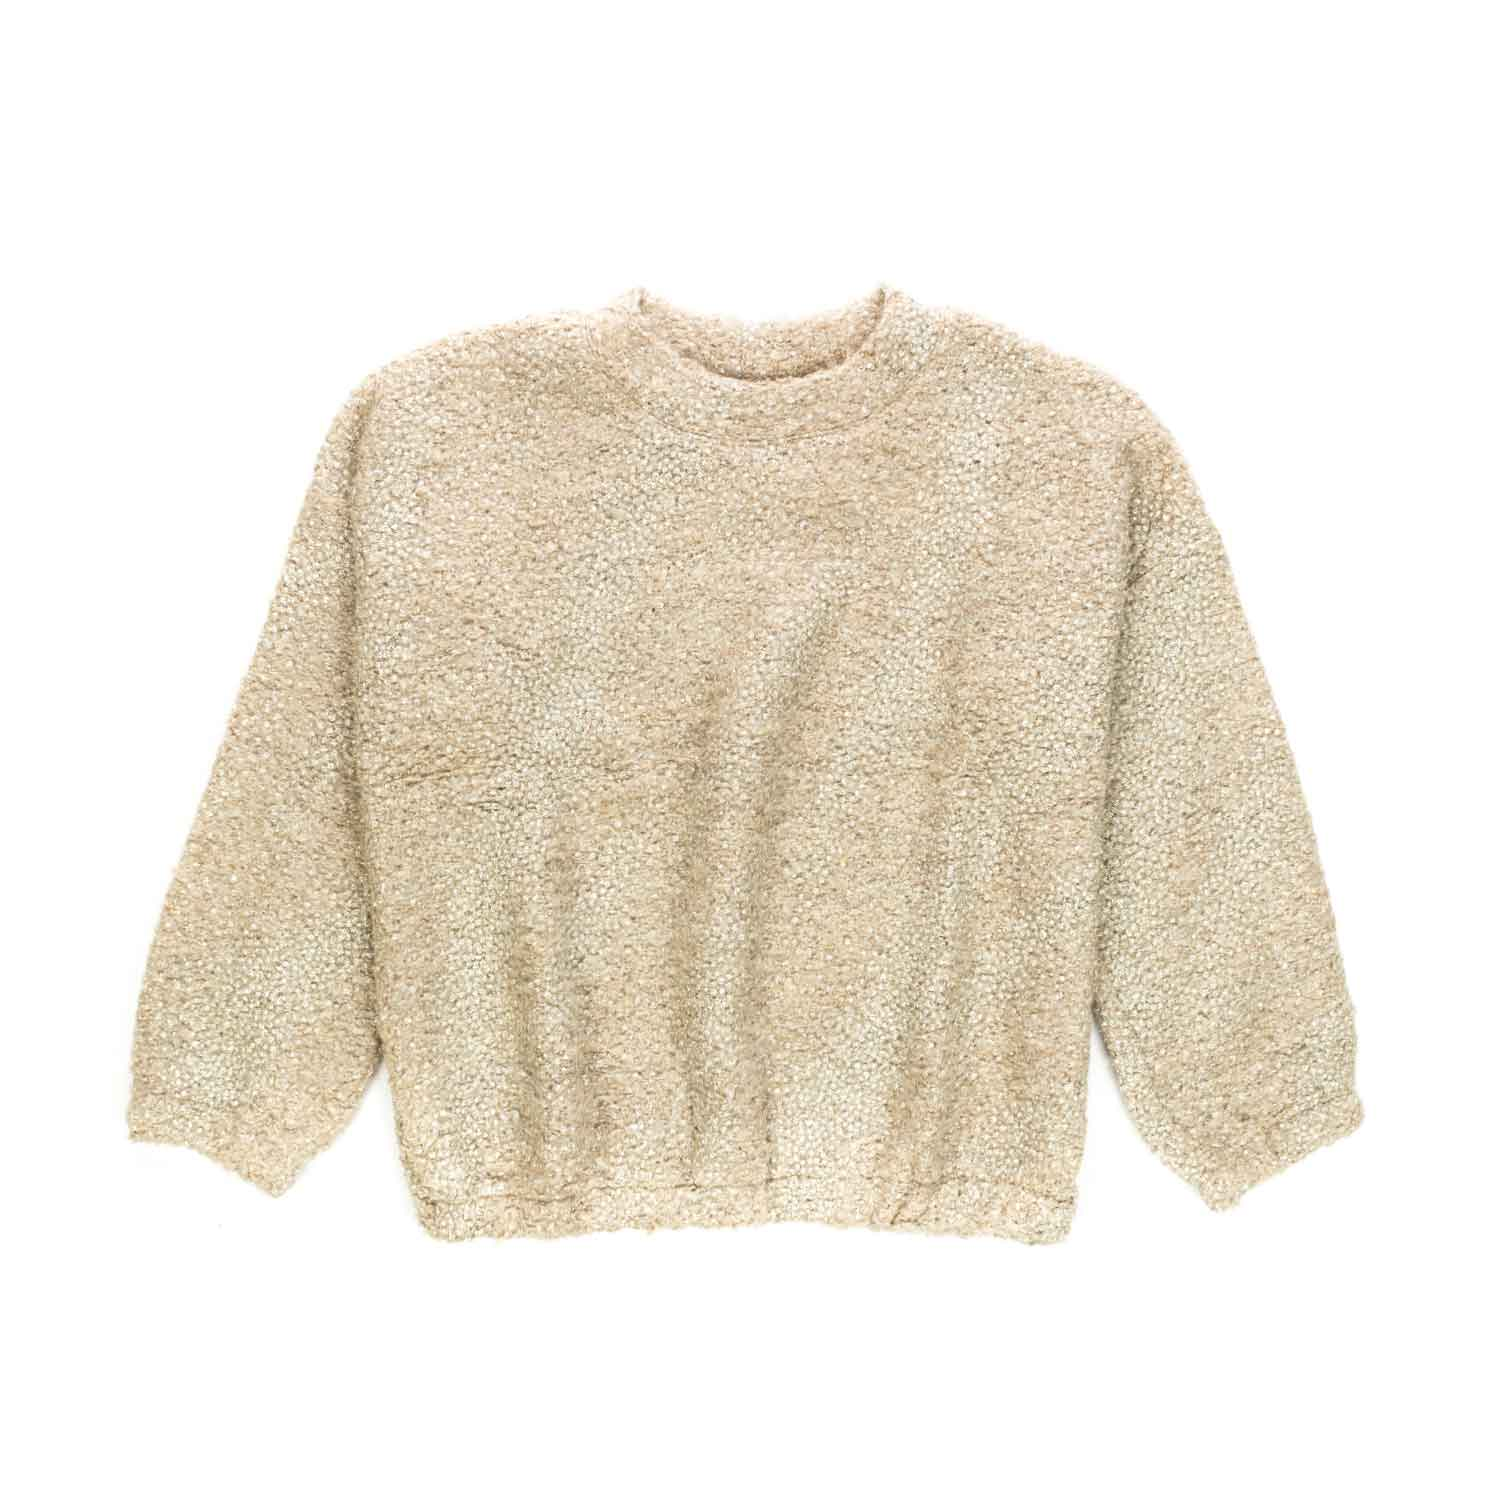 a2662aa22 Caffé D'orzo - Ivory Pullover For Teen Girls - annameglio.com shop ...